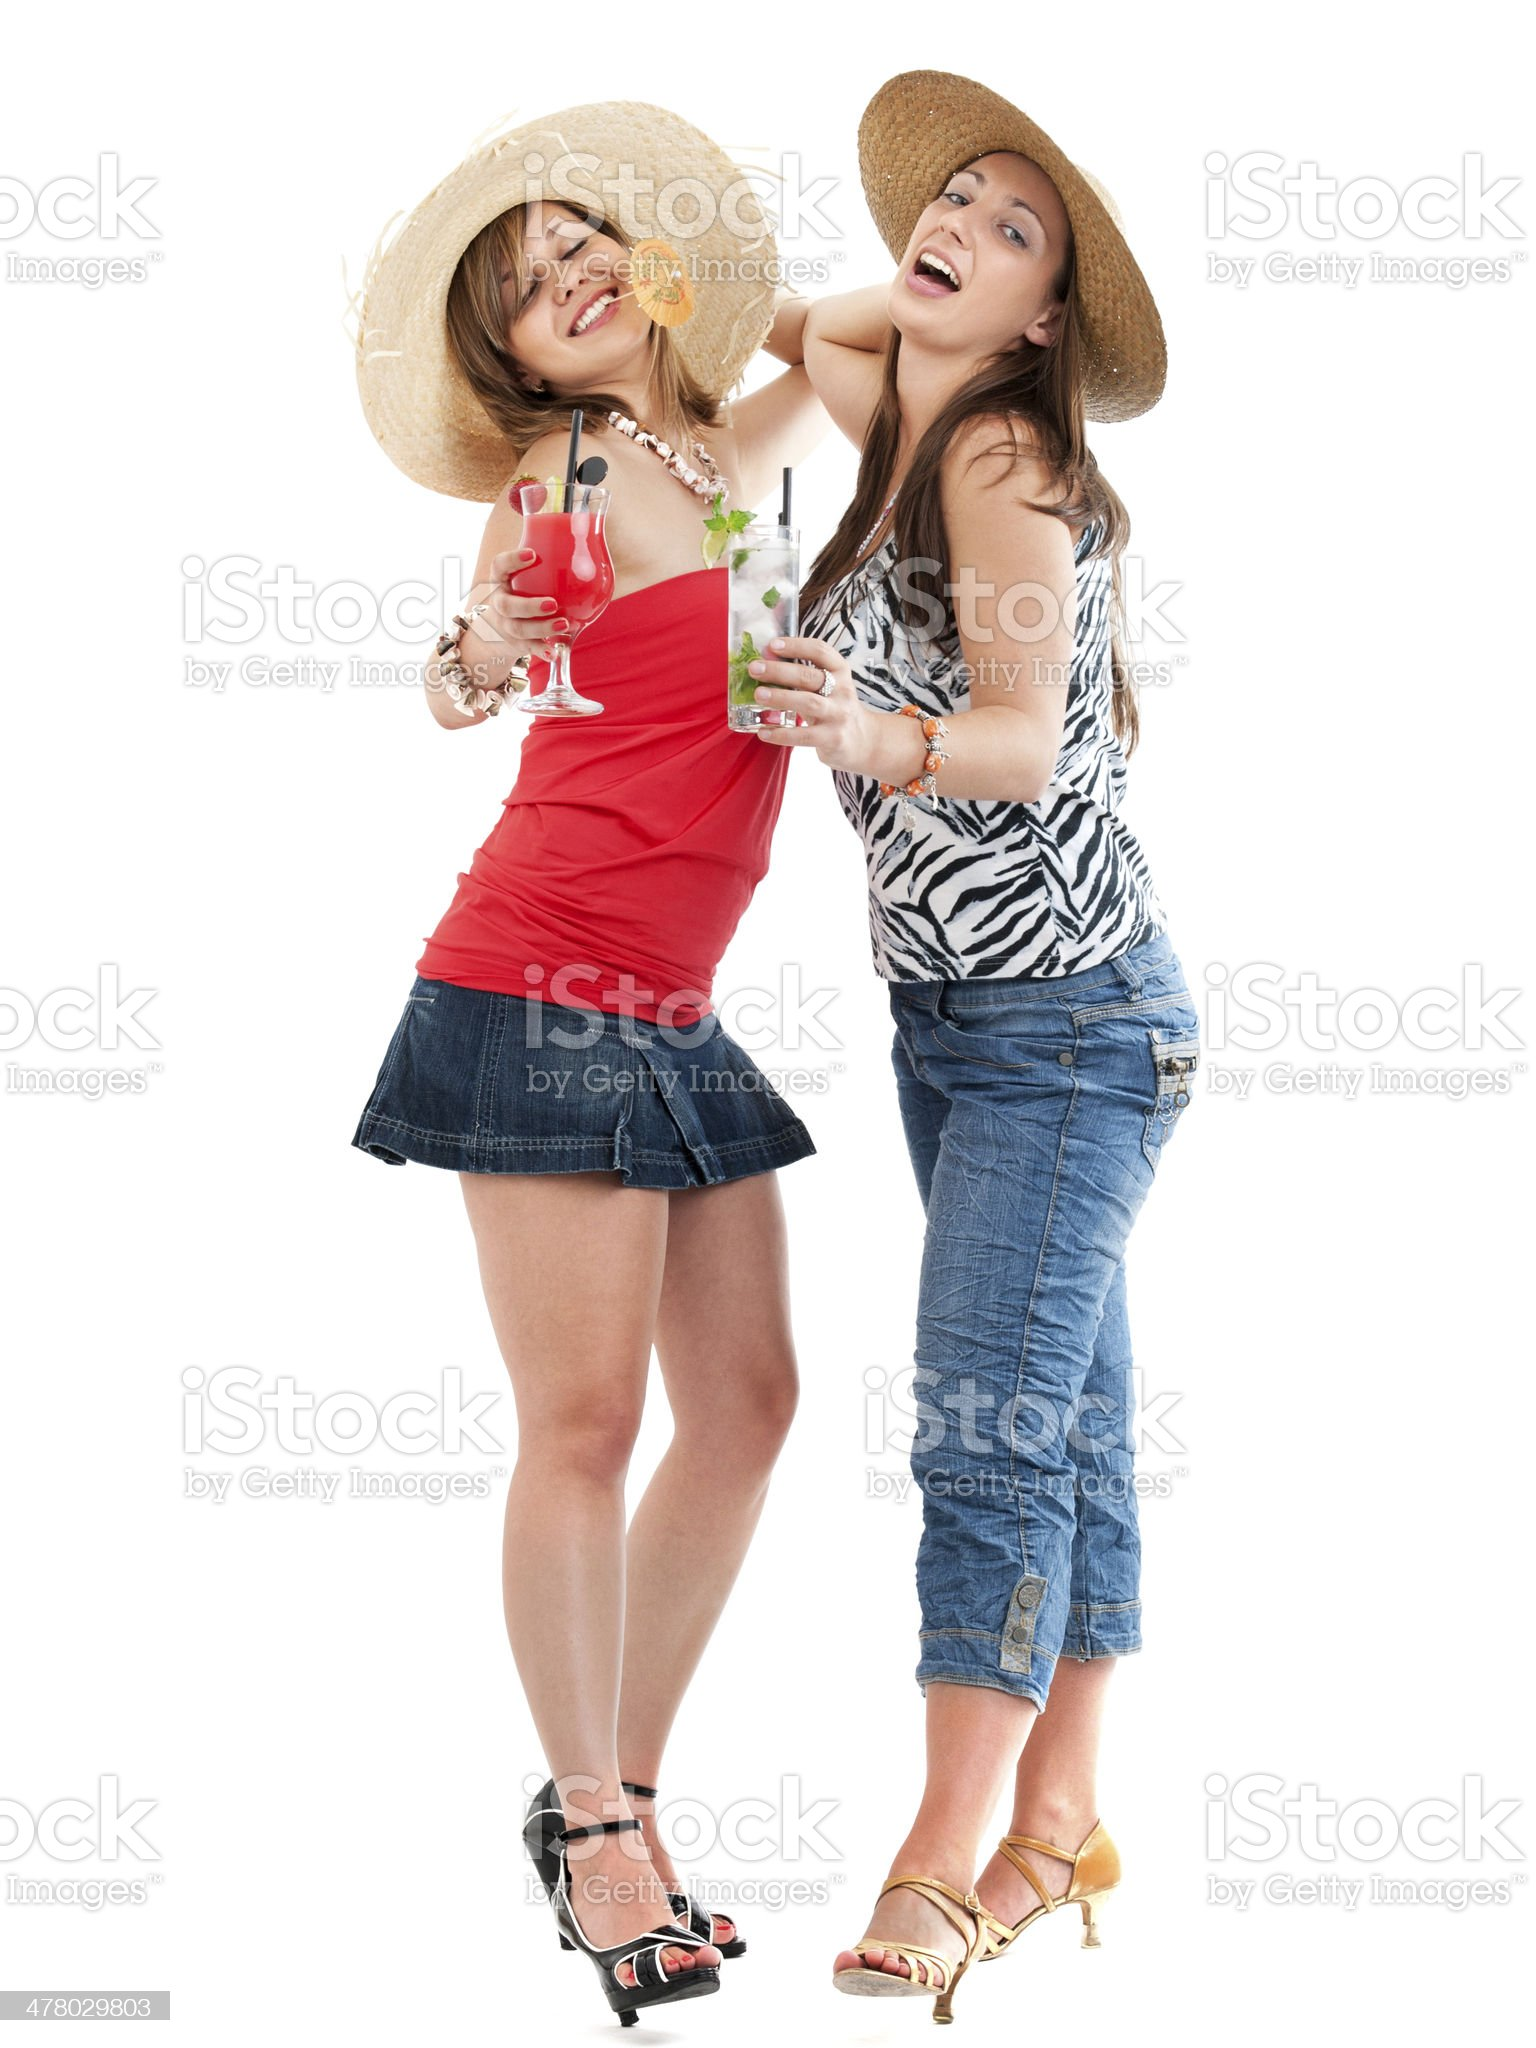 Girls with cocktails royalty-free stock photo